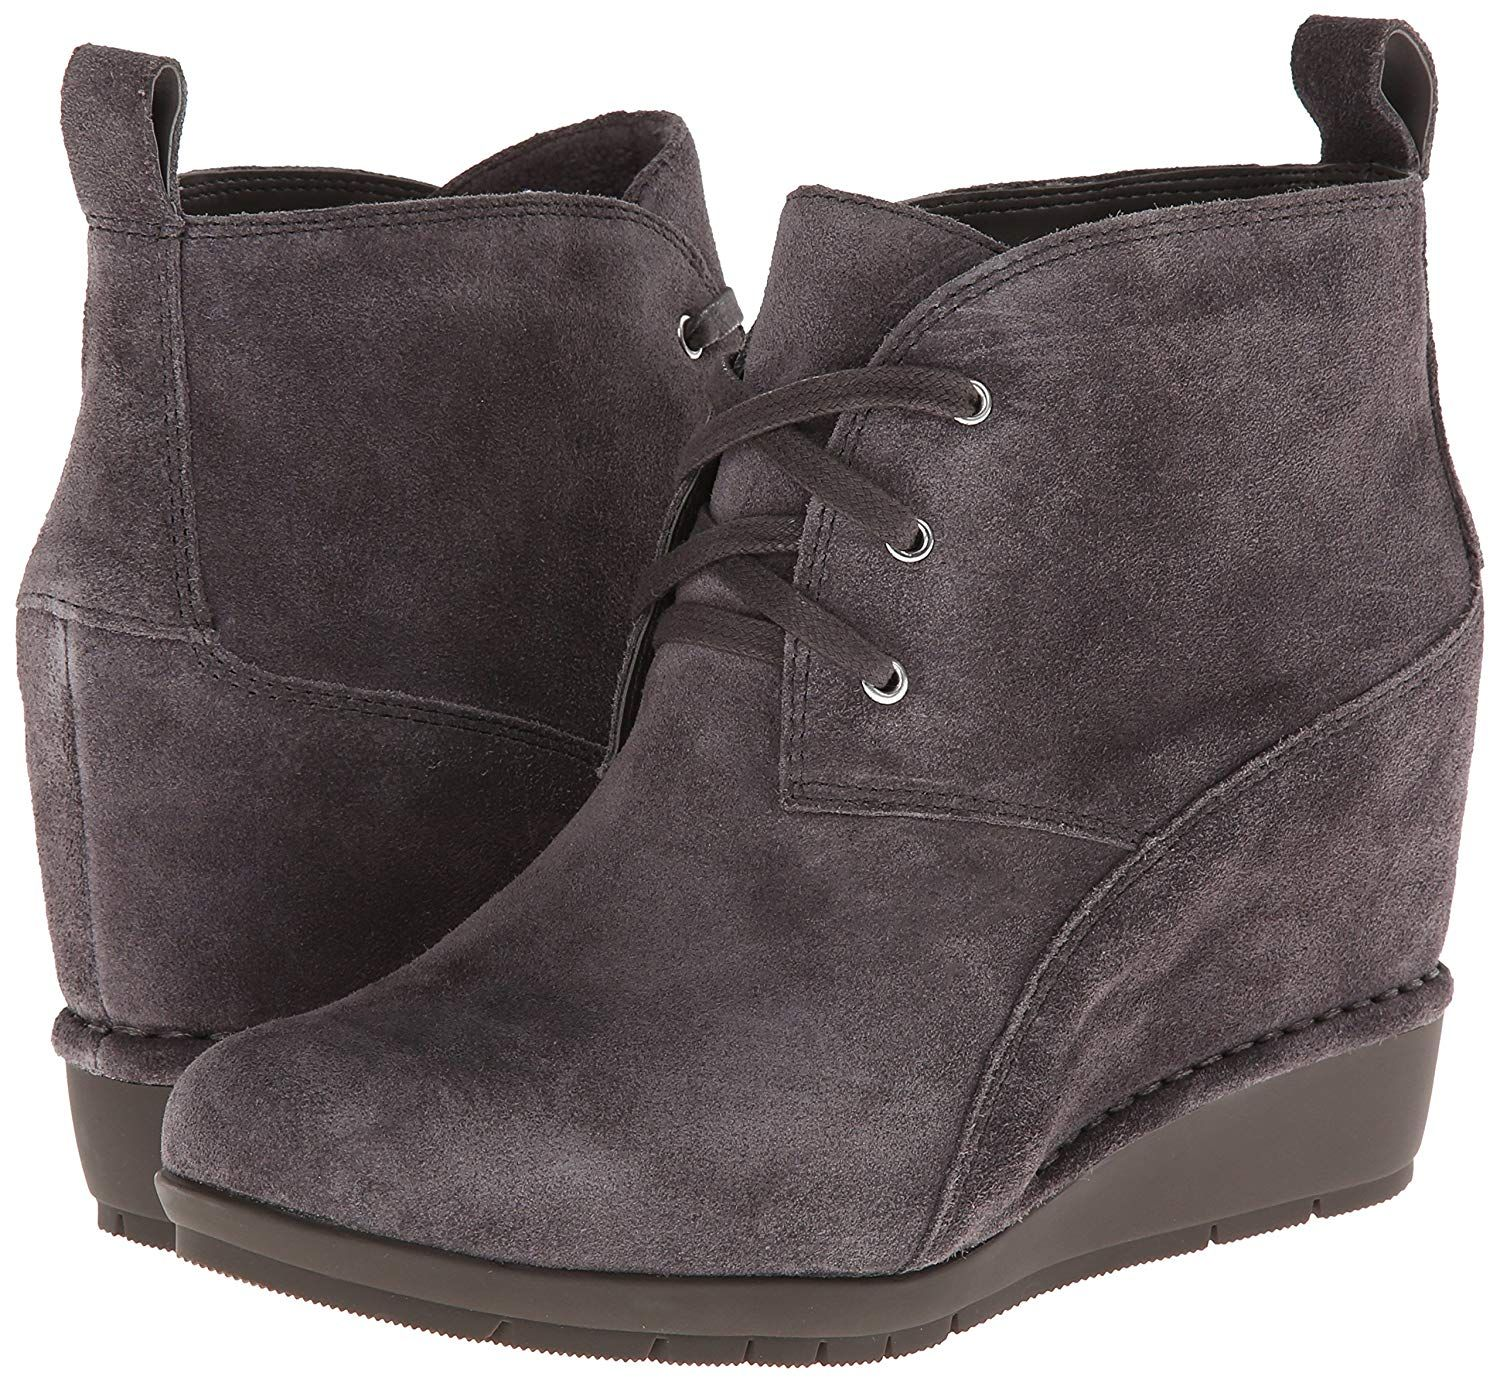 78f96706cc288 Rockport Women's Total Motion 80 MM Desert Chukka Boot >>> Click image for  more details. (This is an affiliate link) #boots